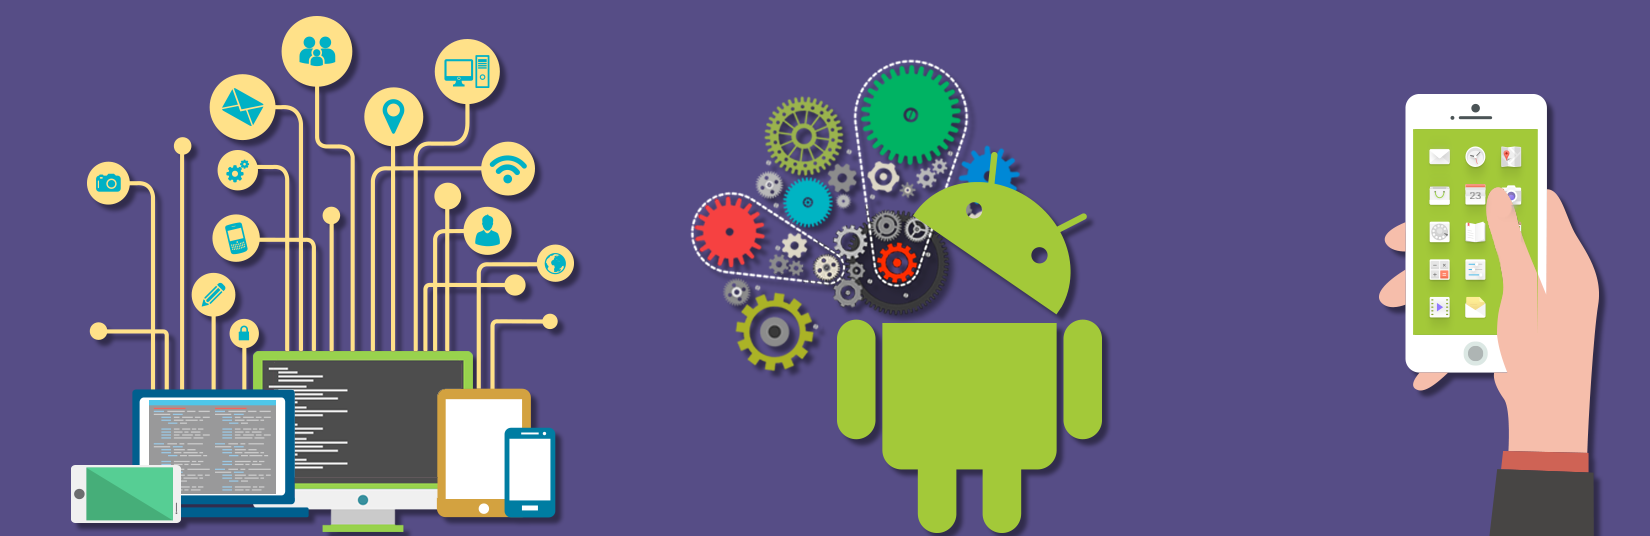 Android-Application-Development-letsnurture